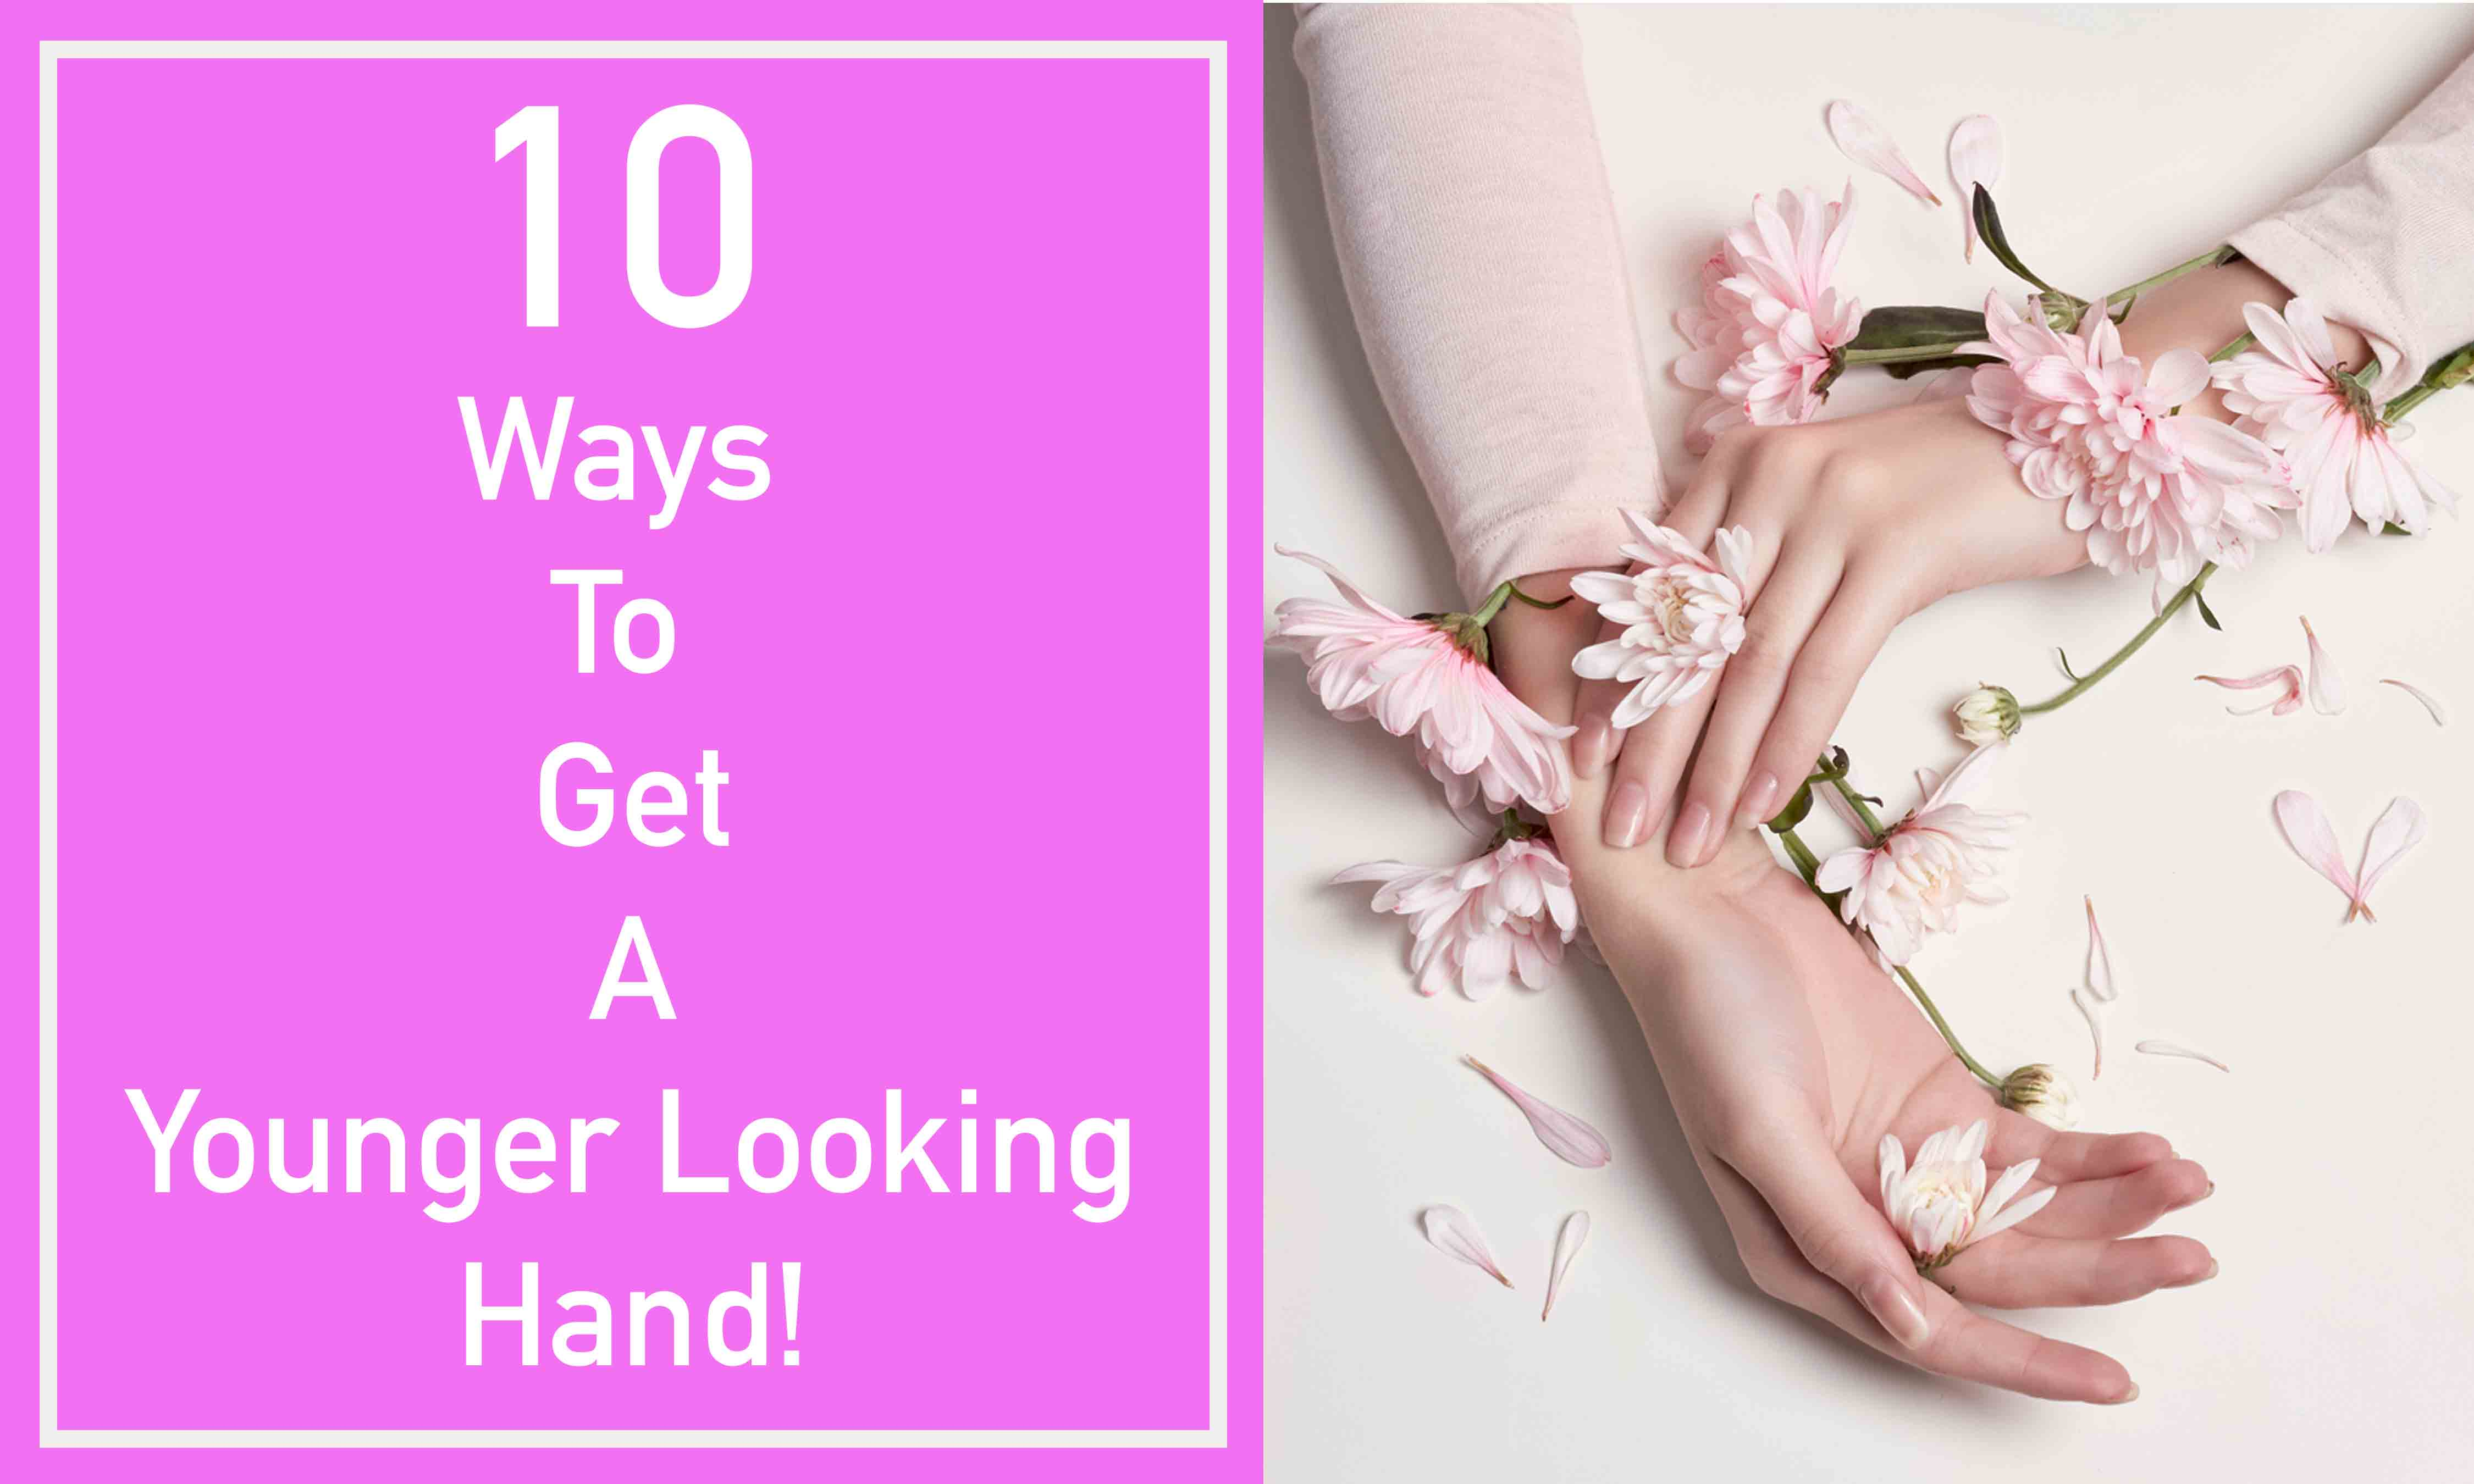 How to get a younger looking hand overnight